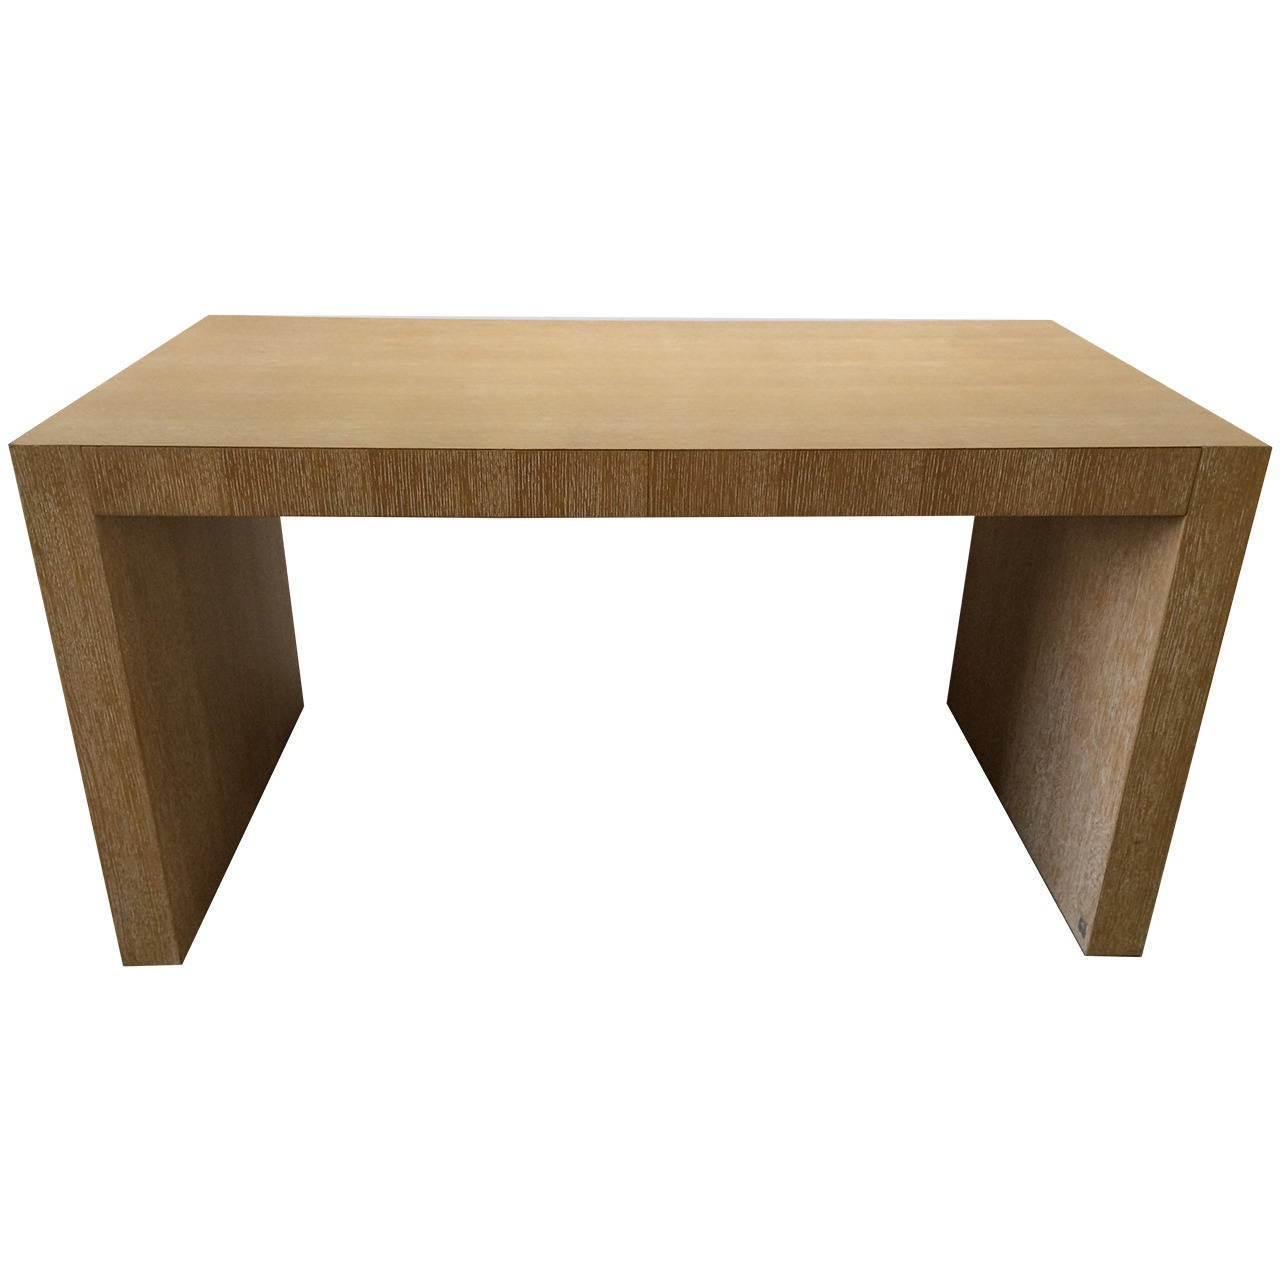 Giorgio Armani Cambridge Desk In Cerused White Oak